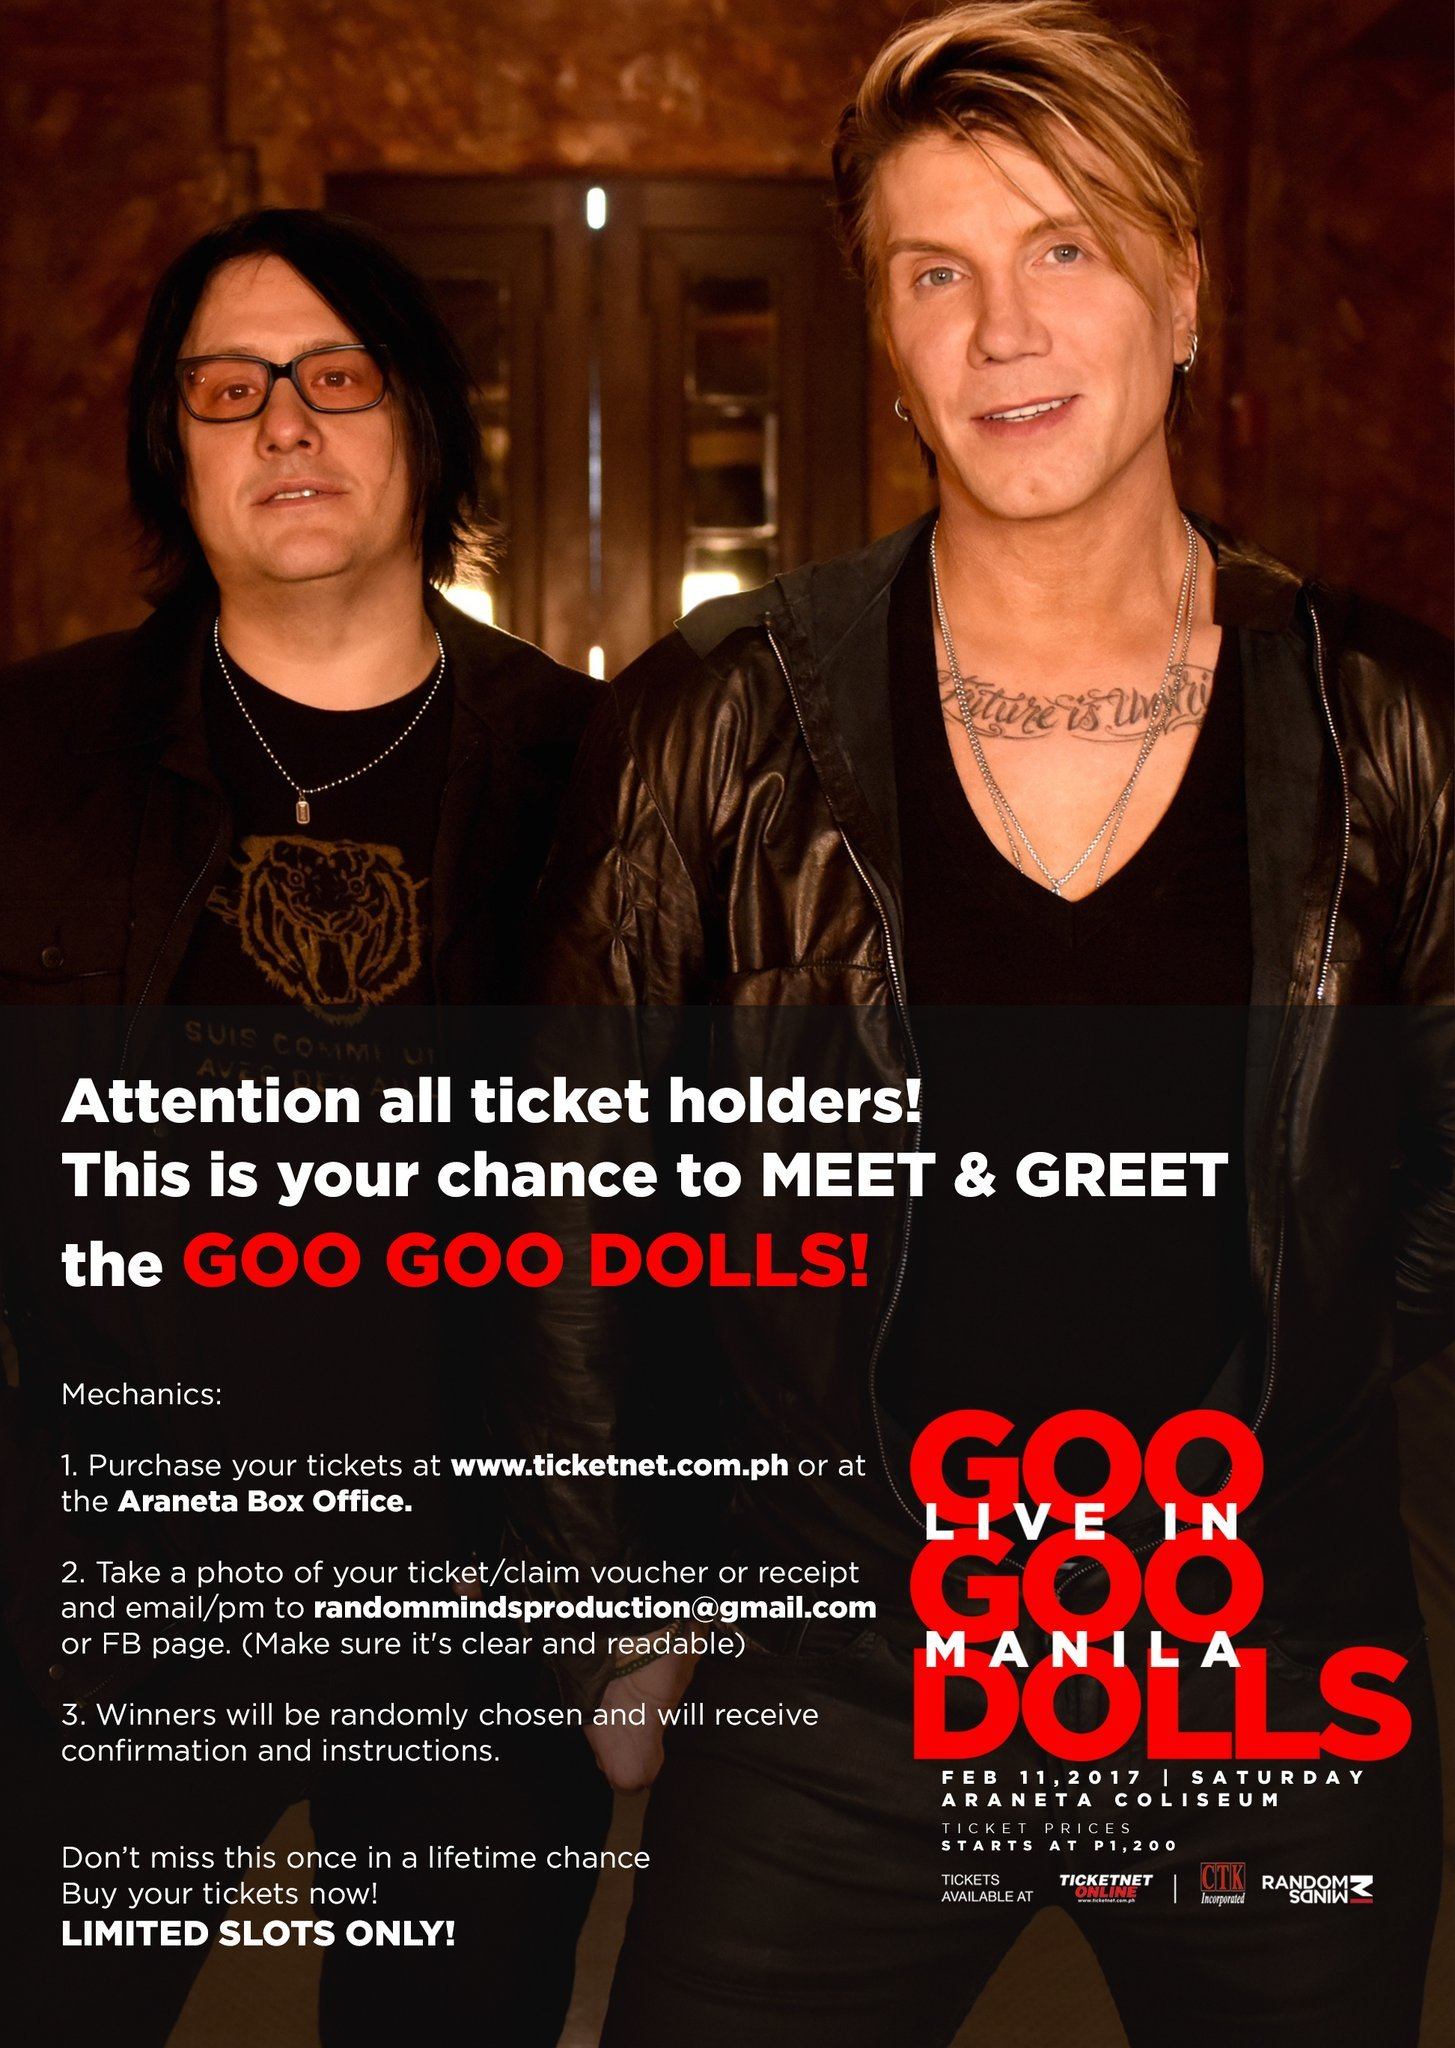 Contest Get A Chance To Meet And Greet The Goo Goo Dolls